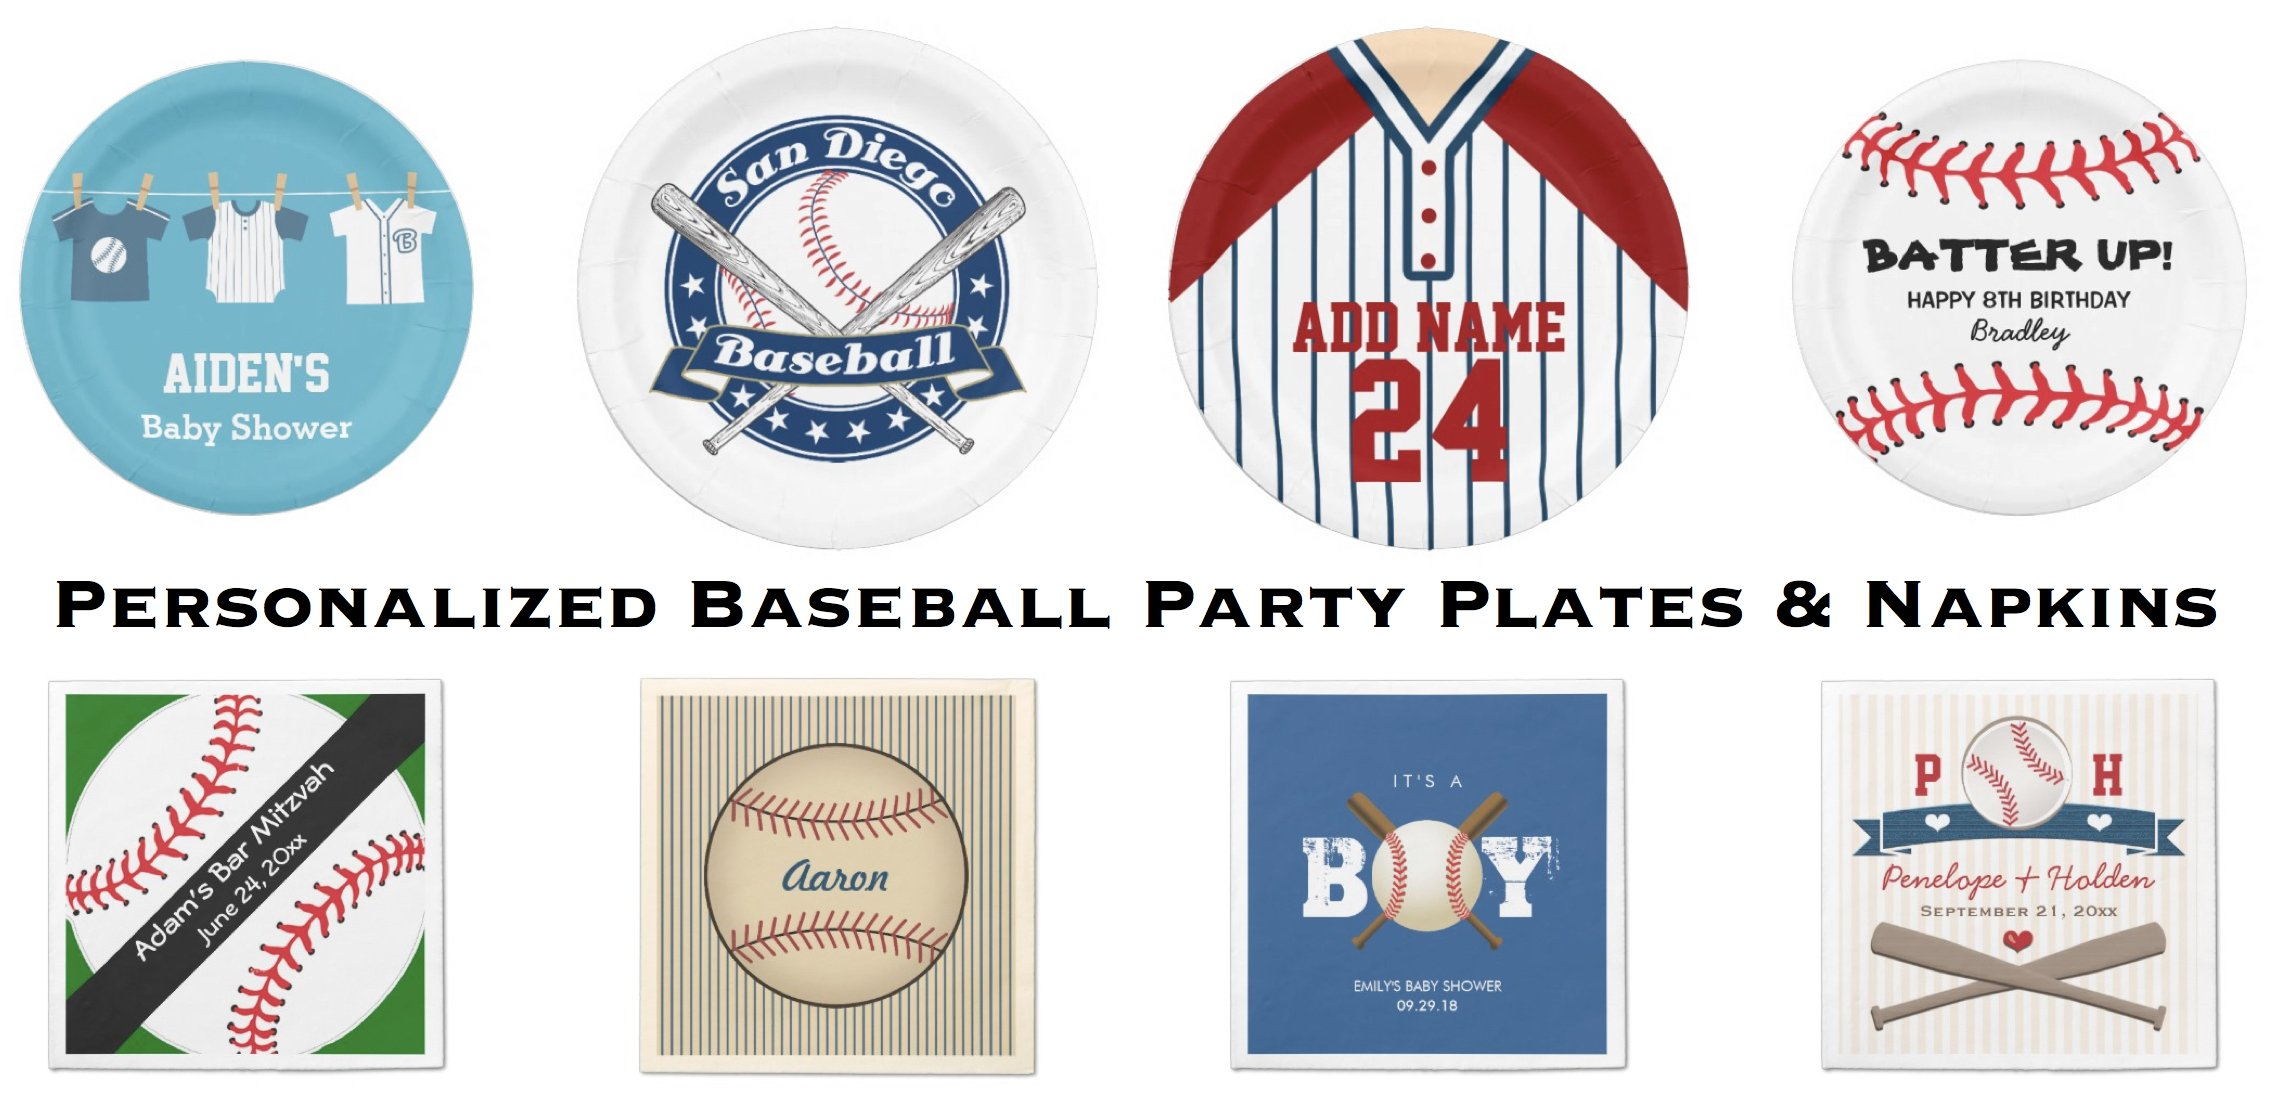 Take Me Out to the Ballgame - Baseball Theme Party Planning, Ideas ...